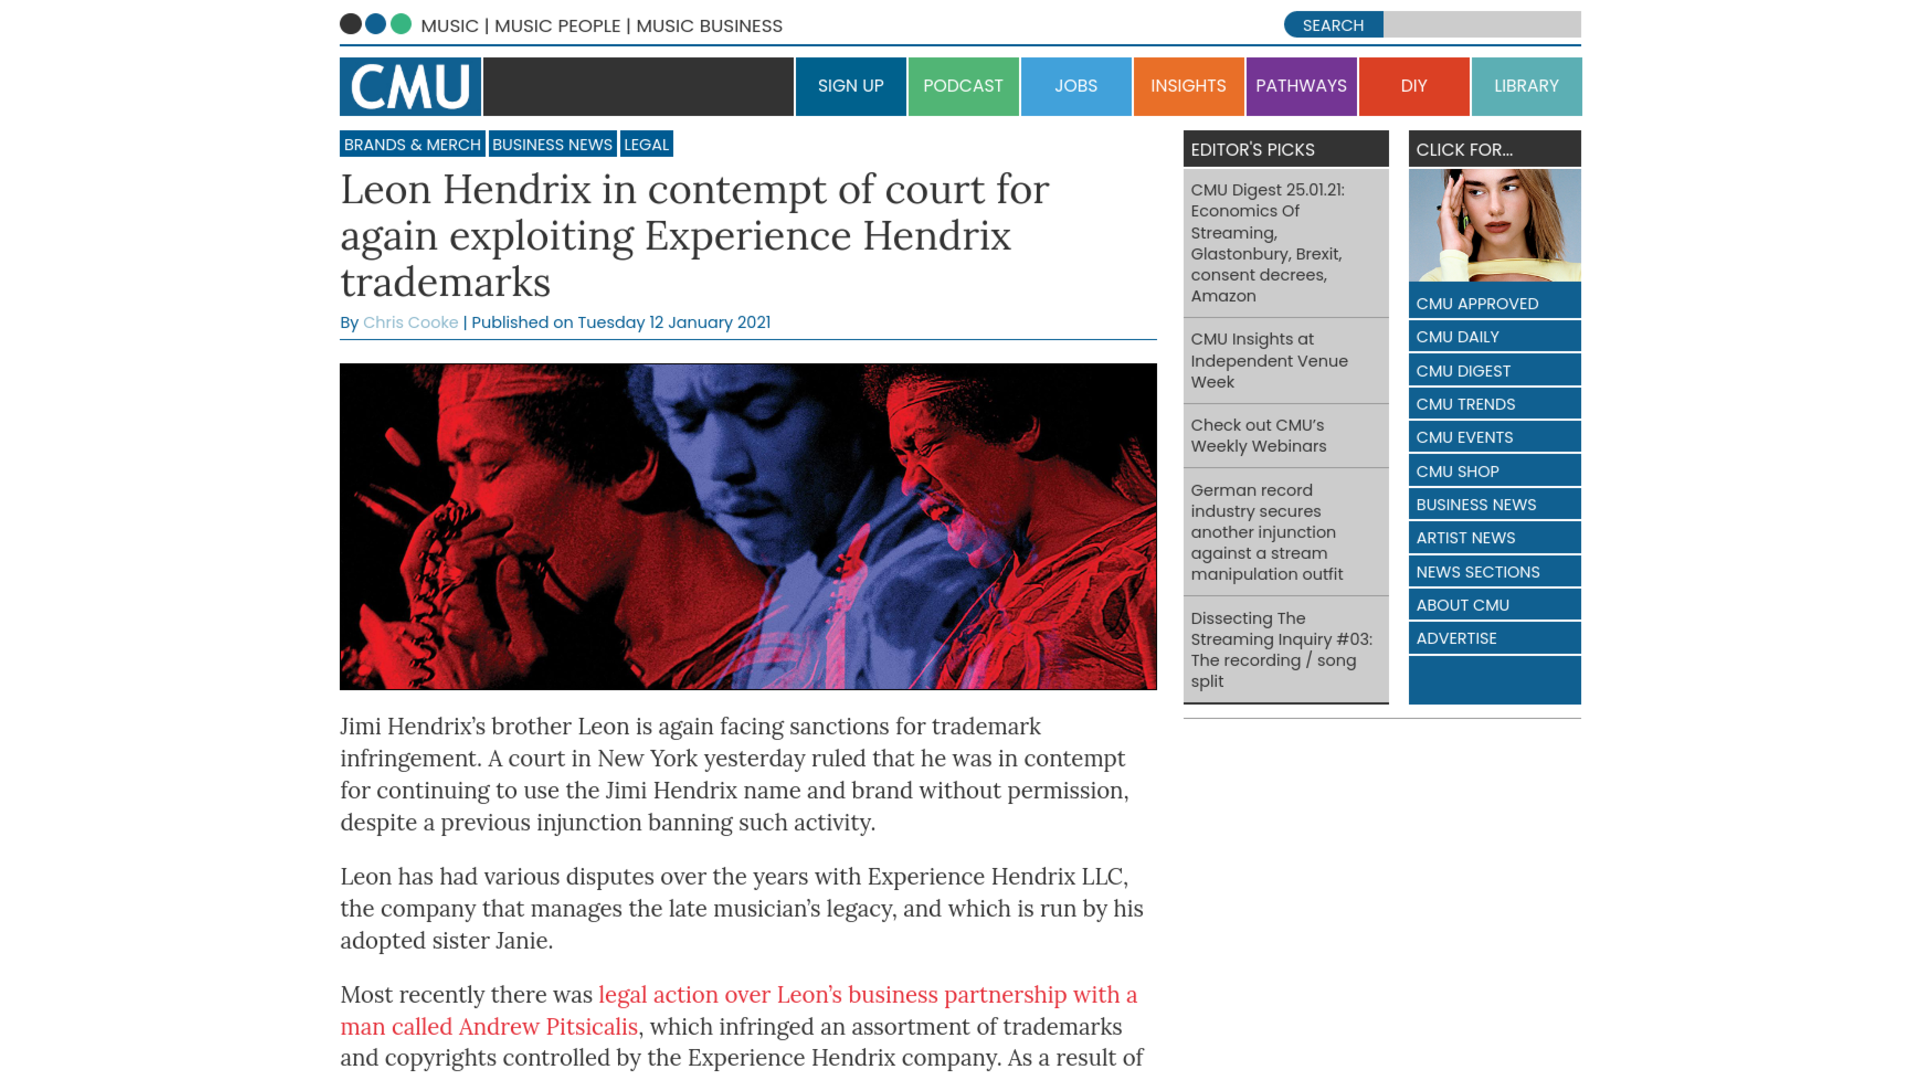 Fairness Rocks News Leon Hendrix in contempt of court for again exploiting Experience Hendrix trademarks